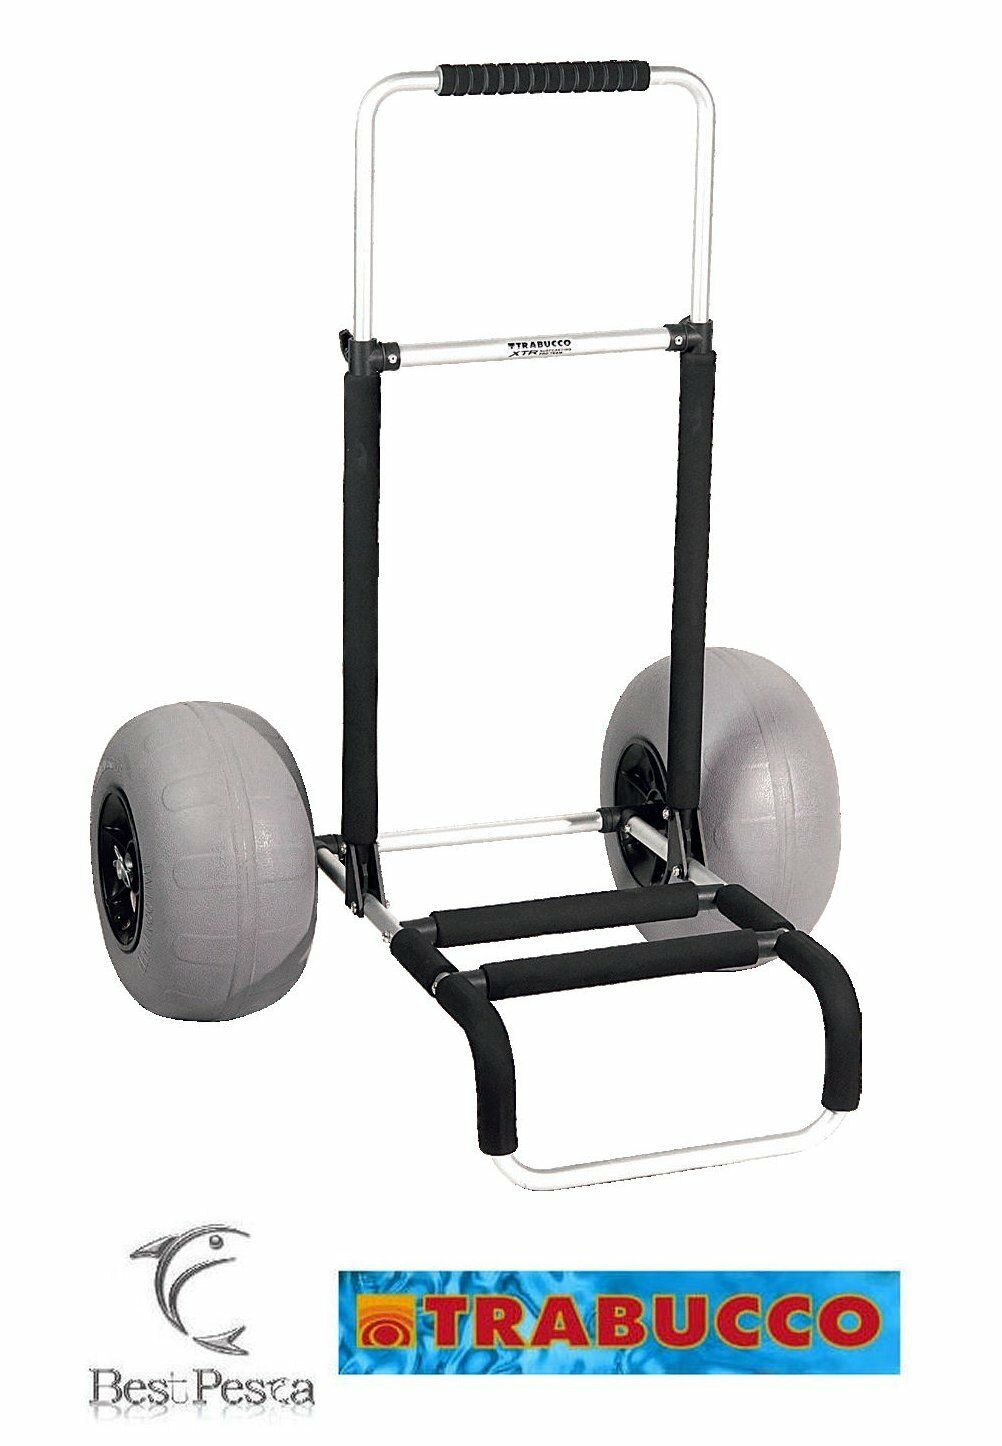 TRABUCCO XTR MAG-WHEEL SURF TROLLEY